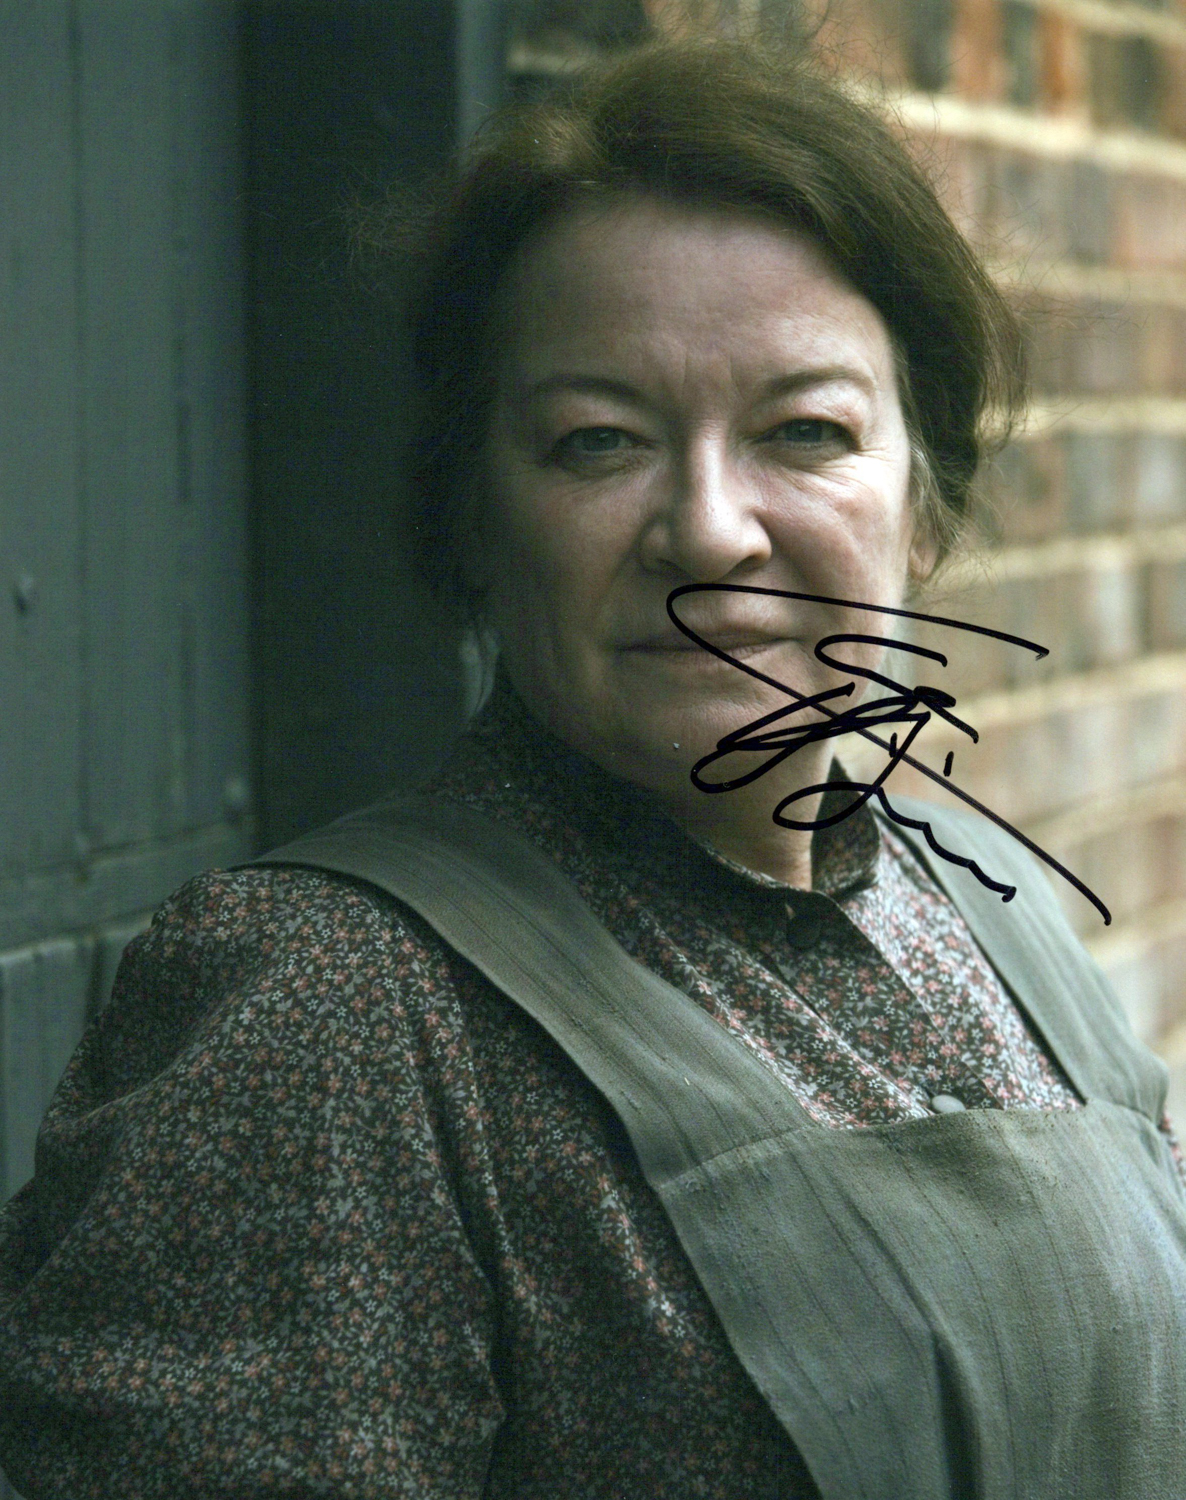 Clare Higgins Original Autogramm auf Foto 20x25cm - Downton Abbey